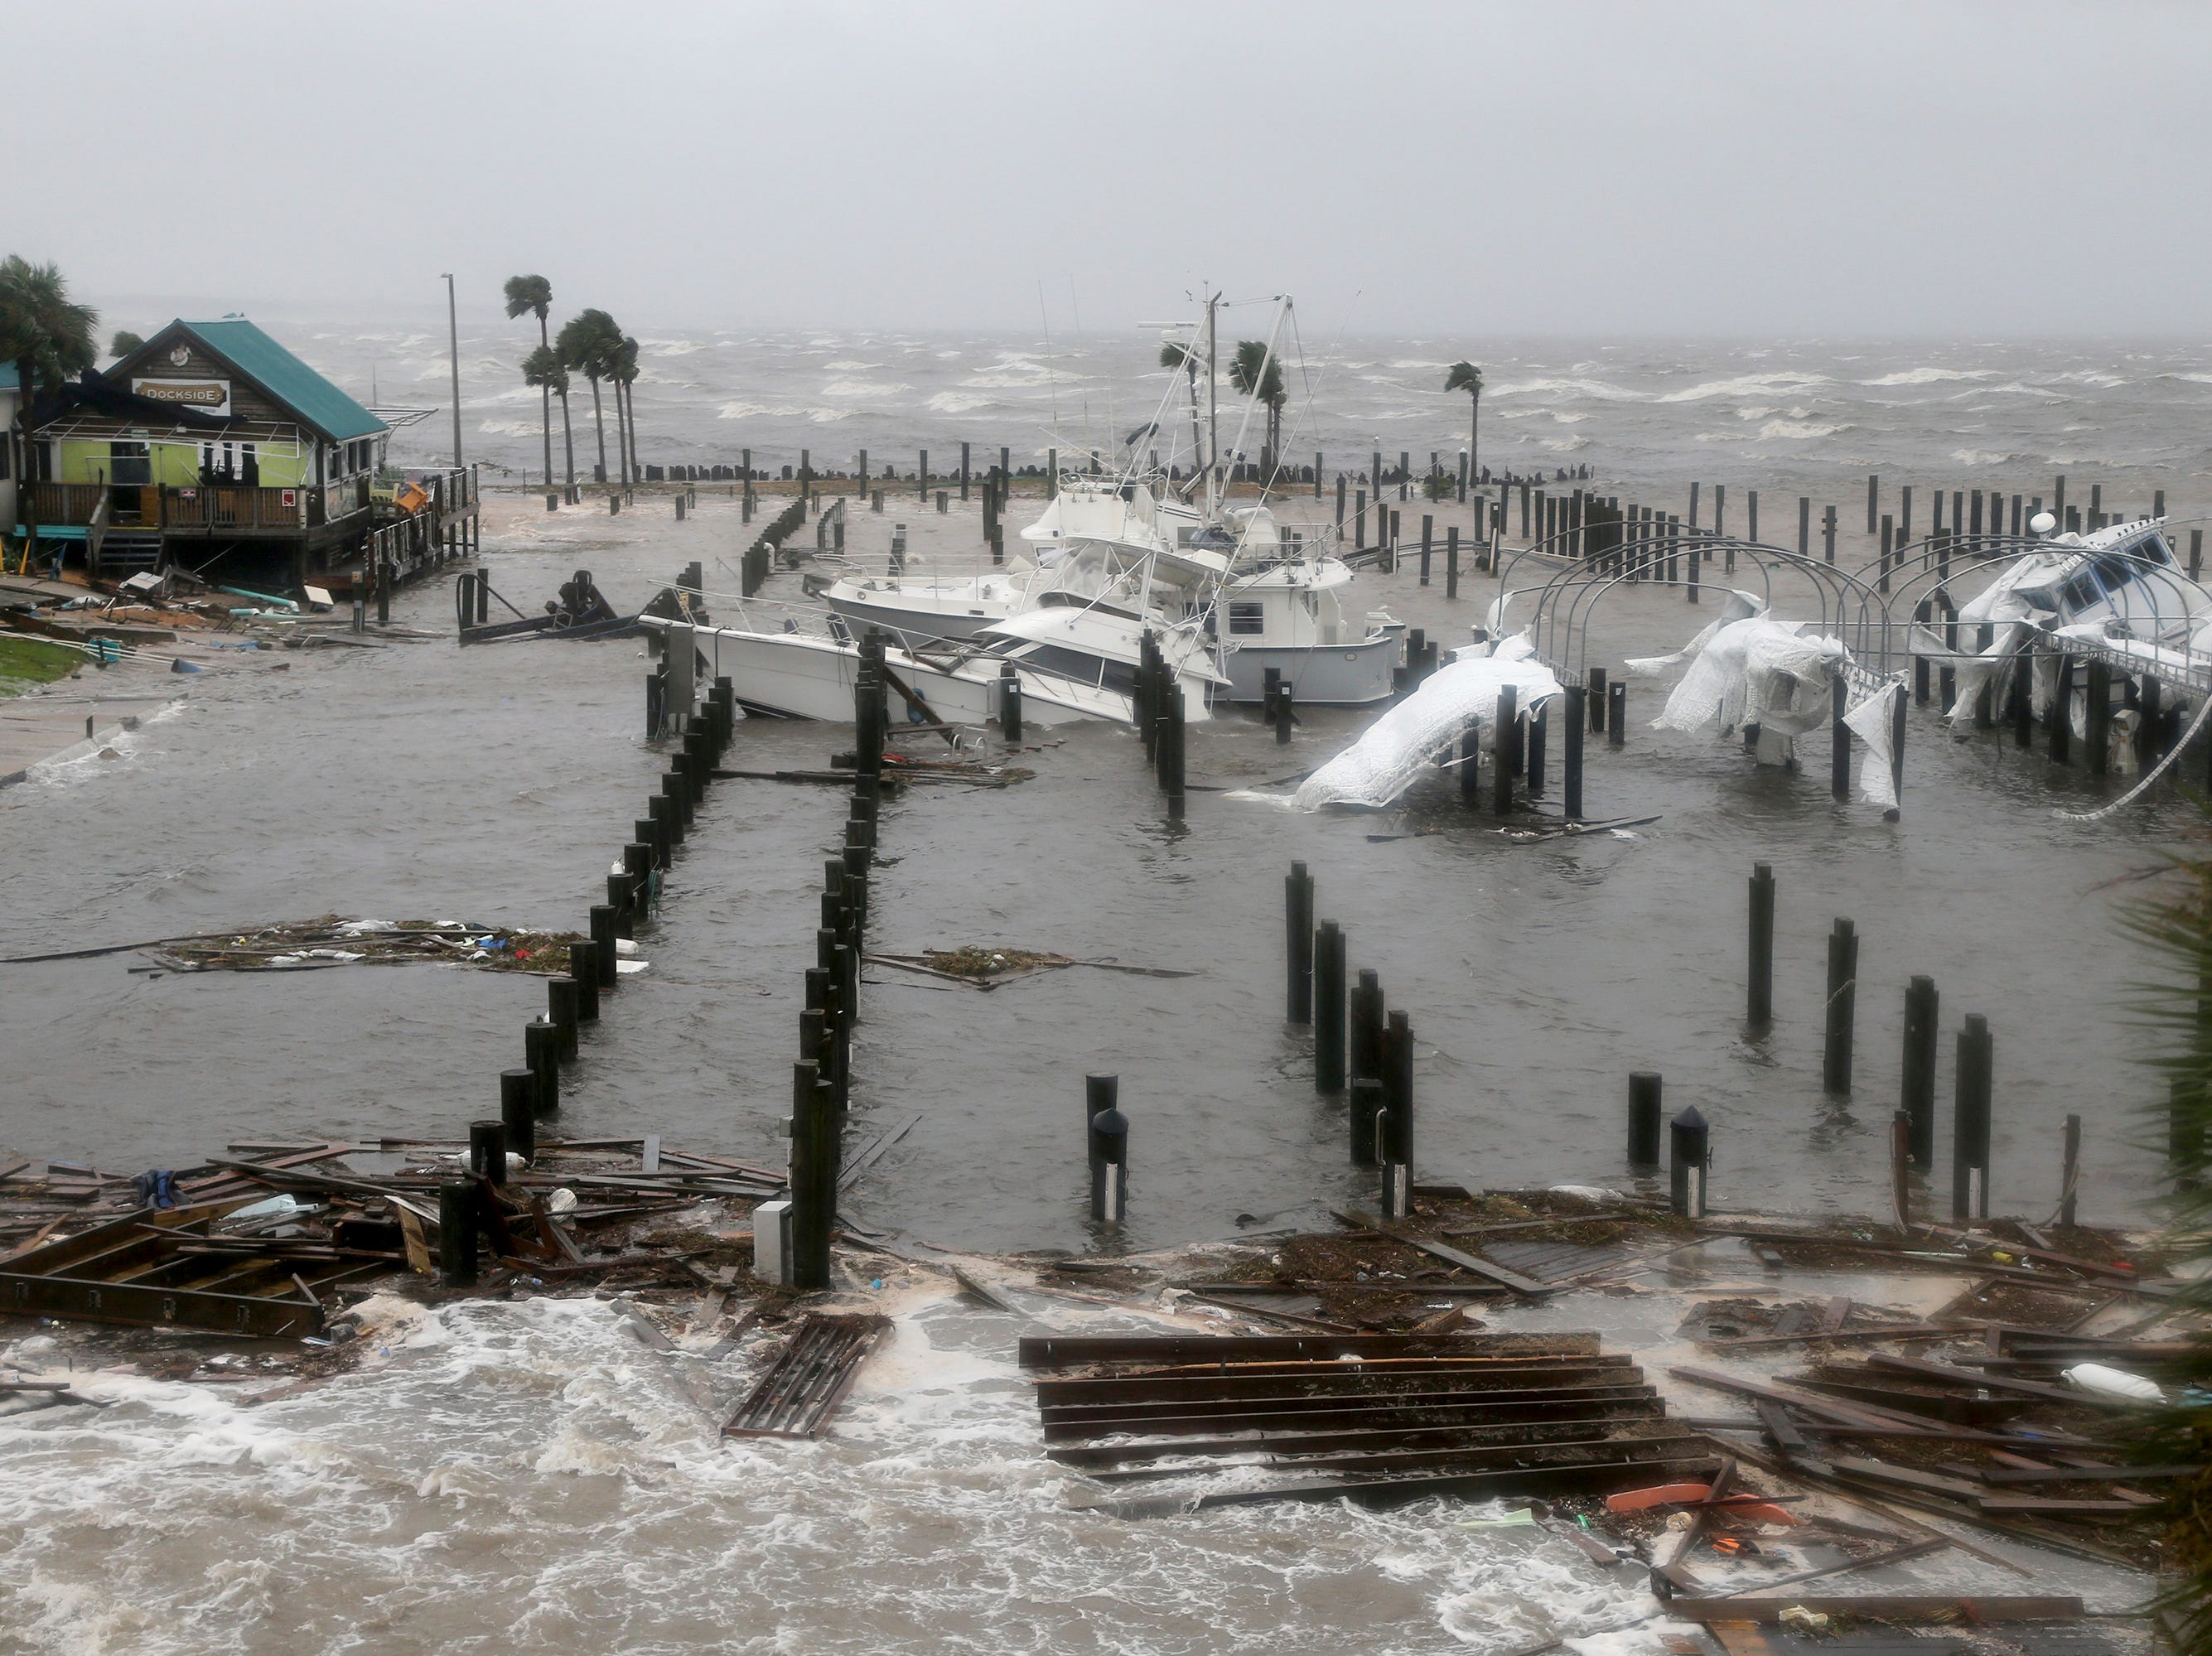 Storm Surge retreats from inland areas, foreground, where boats lay sunk and damaged at the Port St. Joe Marina, Wednesday, Oct. 10, 2018 in Port St. Joe, Fla. Supercharged by abnormally warm waters in the Gulf of Mexico, Hurricane Michael slammed into the Florida Panhandle with terrifying winds of 155 mph Wednesday, splintering homes and submerging neighborhoods.